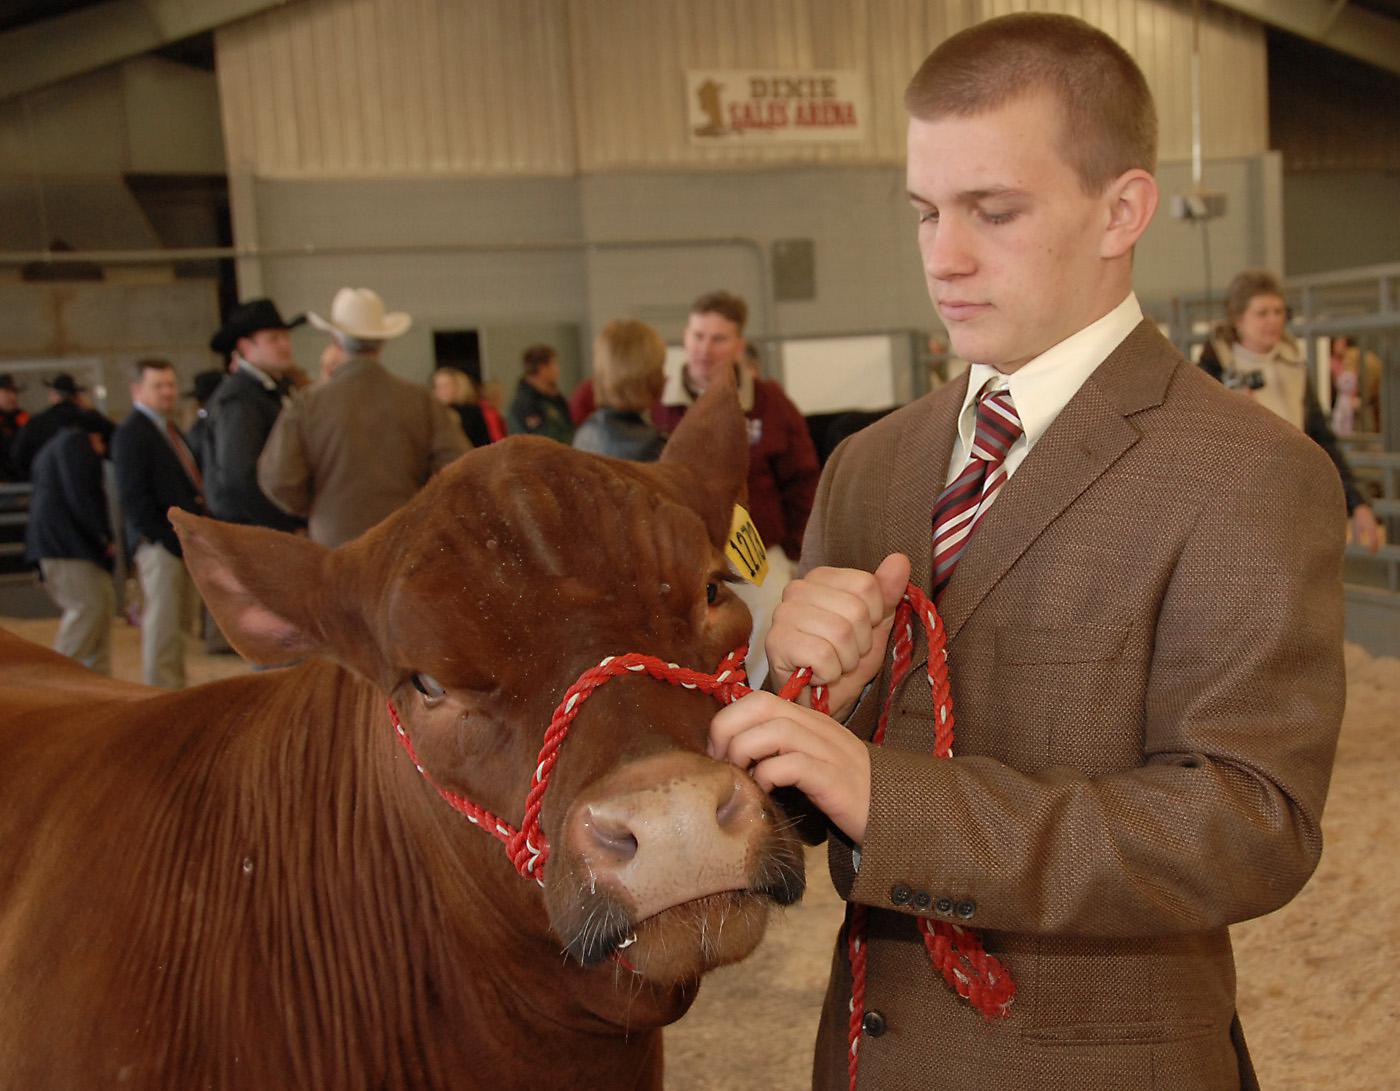 Wes Herrington of Laurel, Miss., 16, prepares to take his steer into the Dixie National Sale of Junior Champions Thursday morning. (Photos by Jim Lytle)